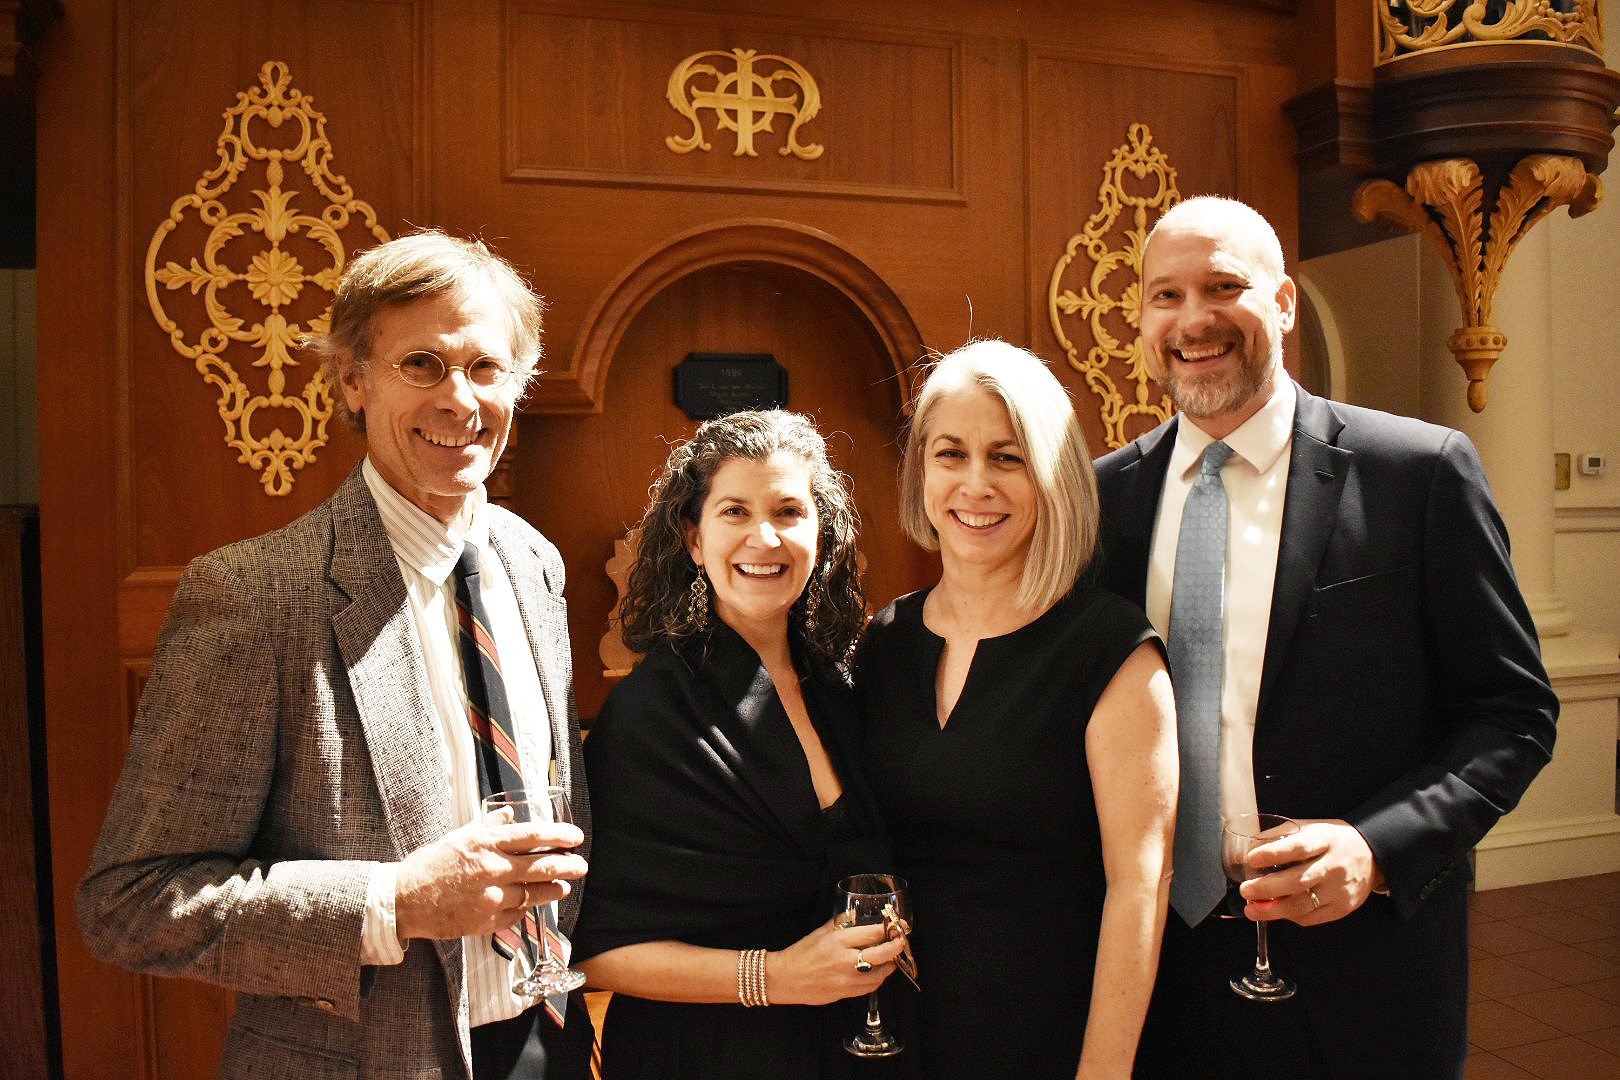 Guests John van Rens and Sarah Lutz, with CLMP Executive Director Mary Gannon and Poets & Writers Editor-in-Chief Kevin Larimer